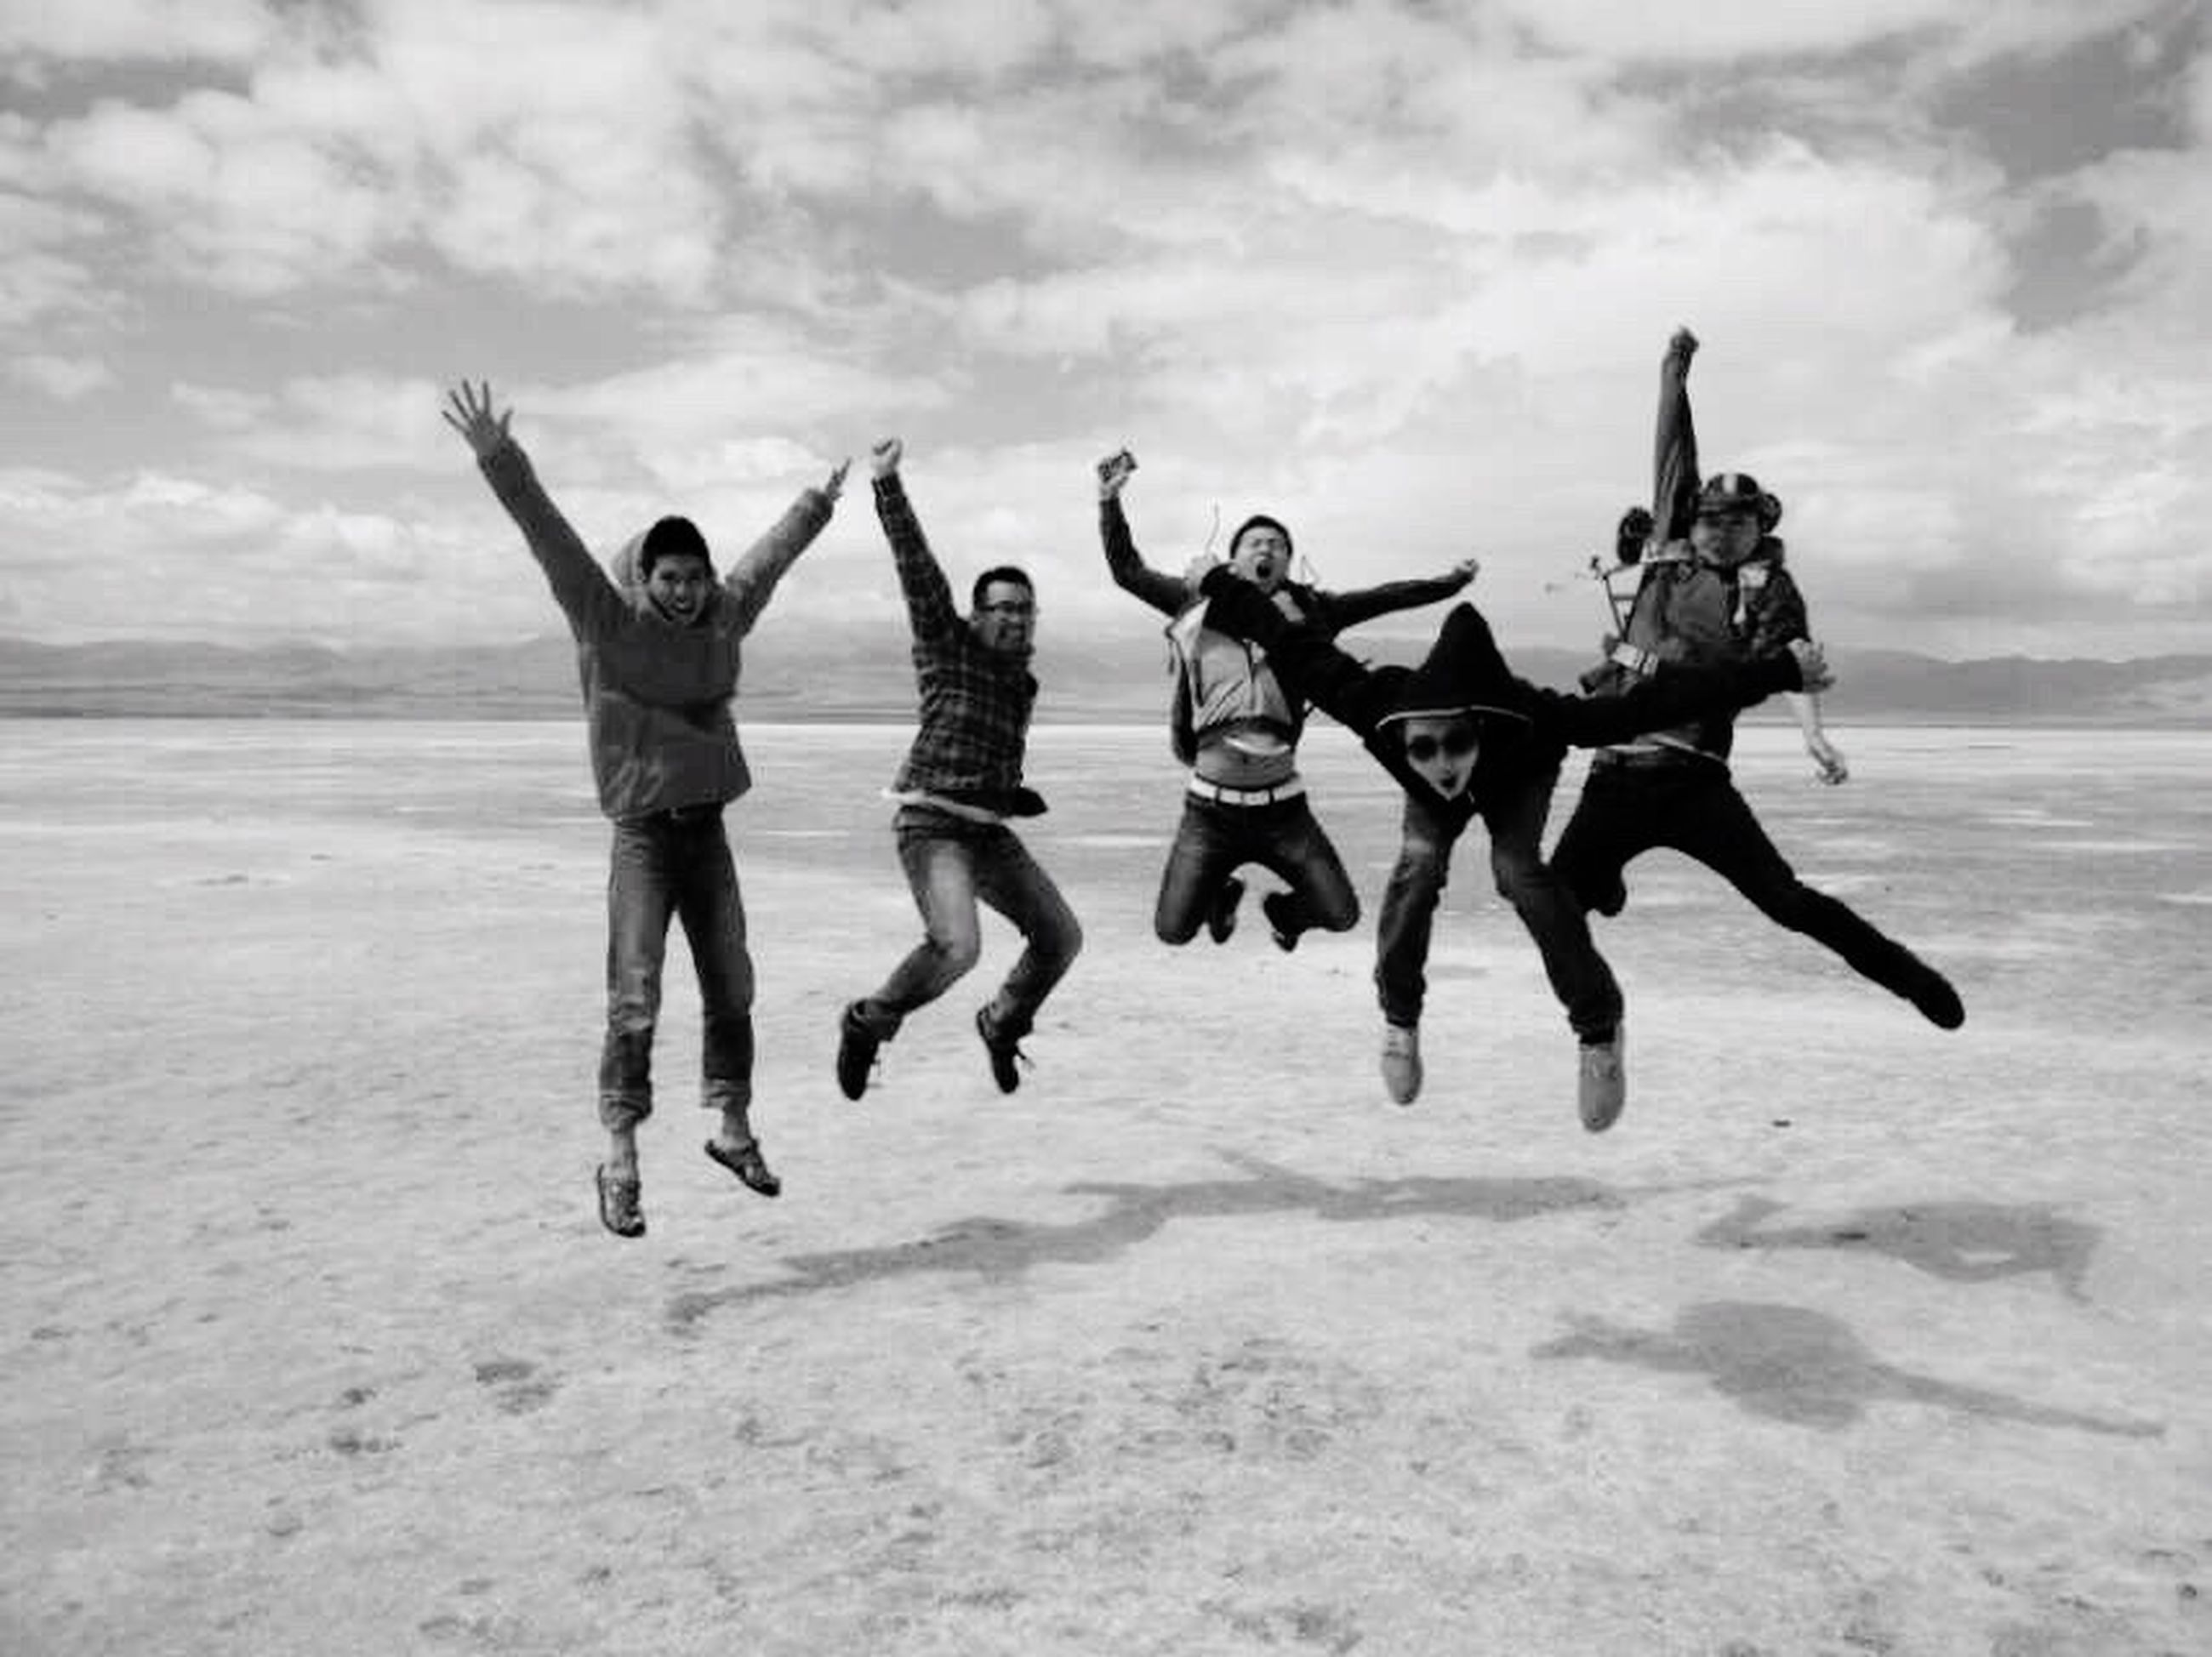 beach, lifestyles, leisure activity, full length, sky, sand, sea, animal themes, togetherness, men, shore, standing, person, cloud - sky, water, vacations, enjoyment